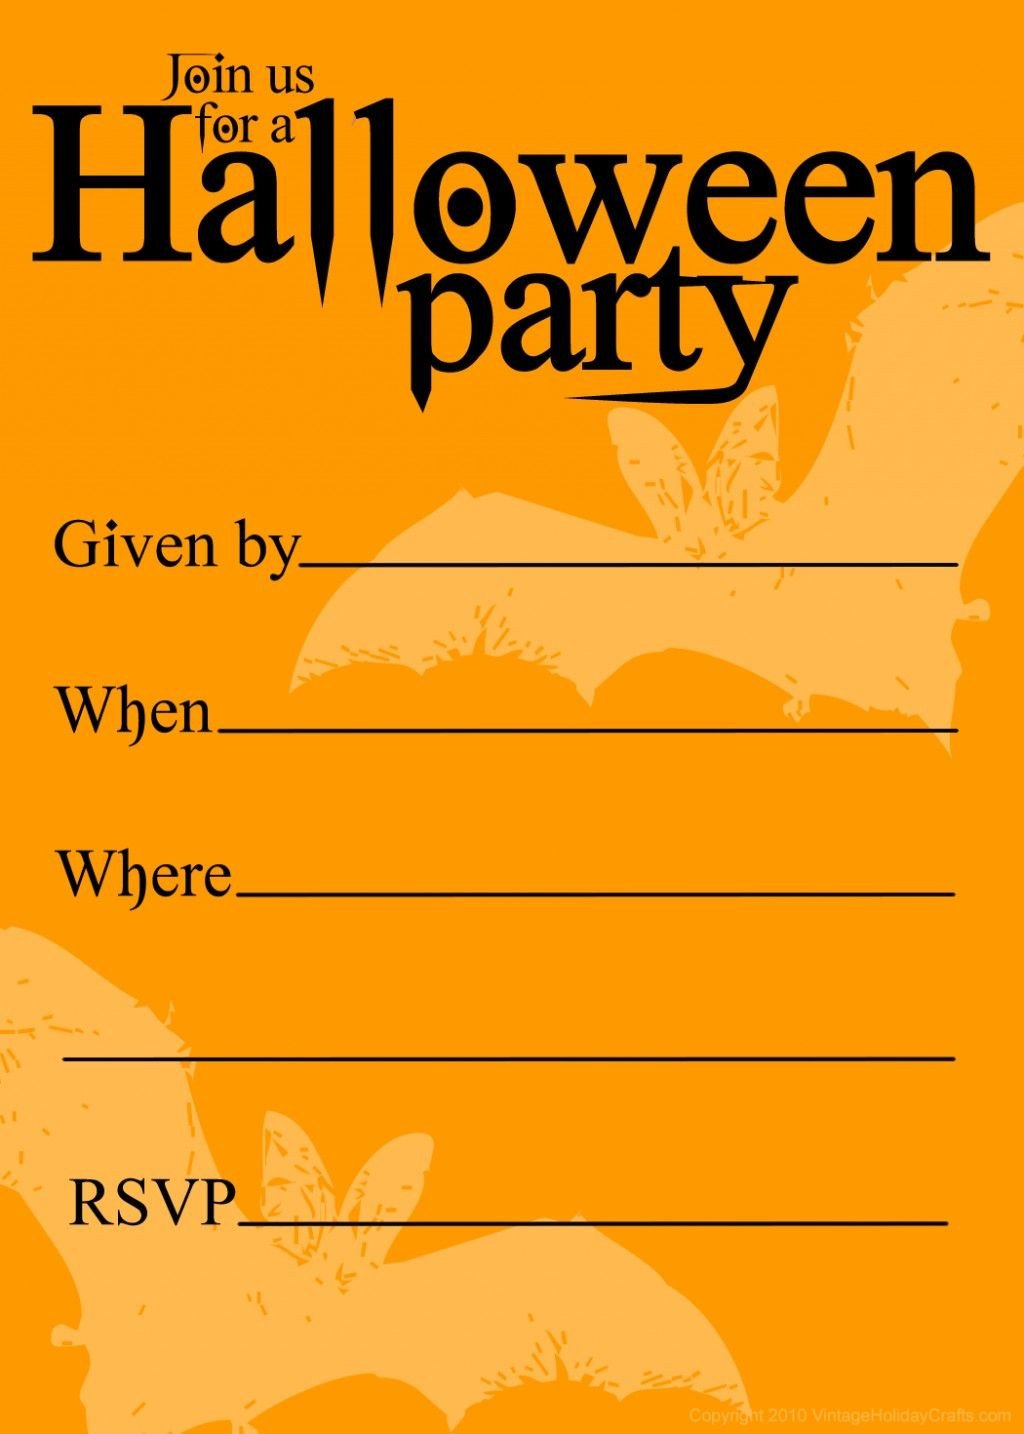 Free Halloween Invitation Templates Free Printable Halloween Birthday Invitations Templates